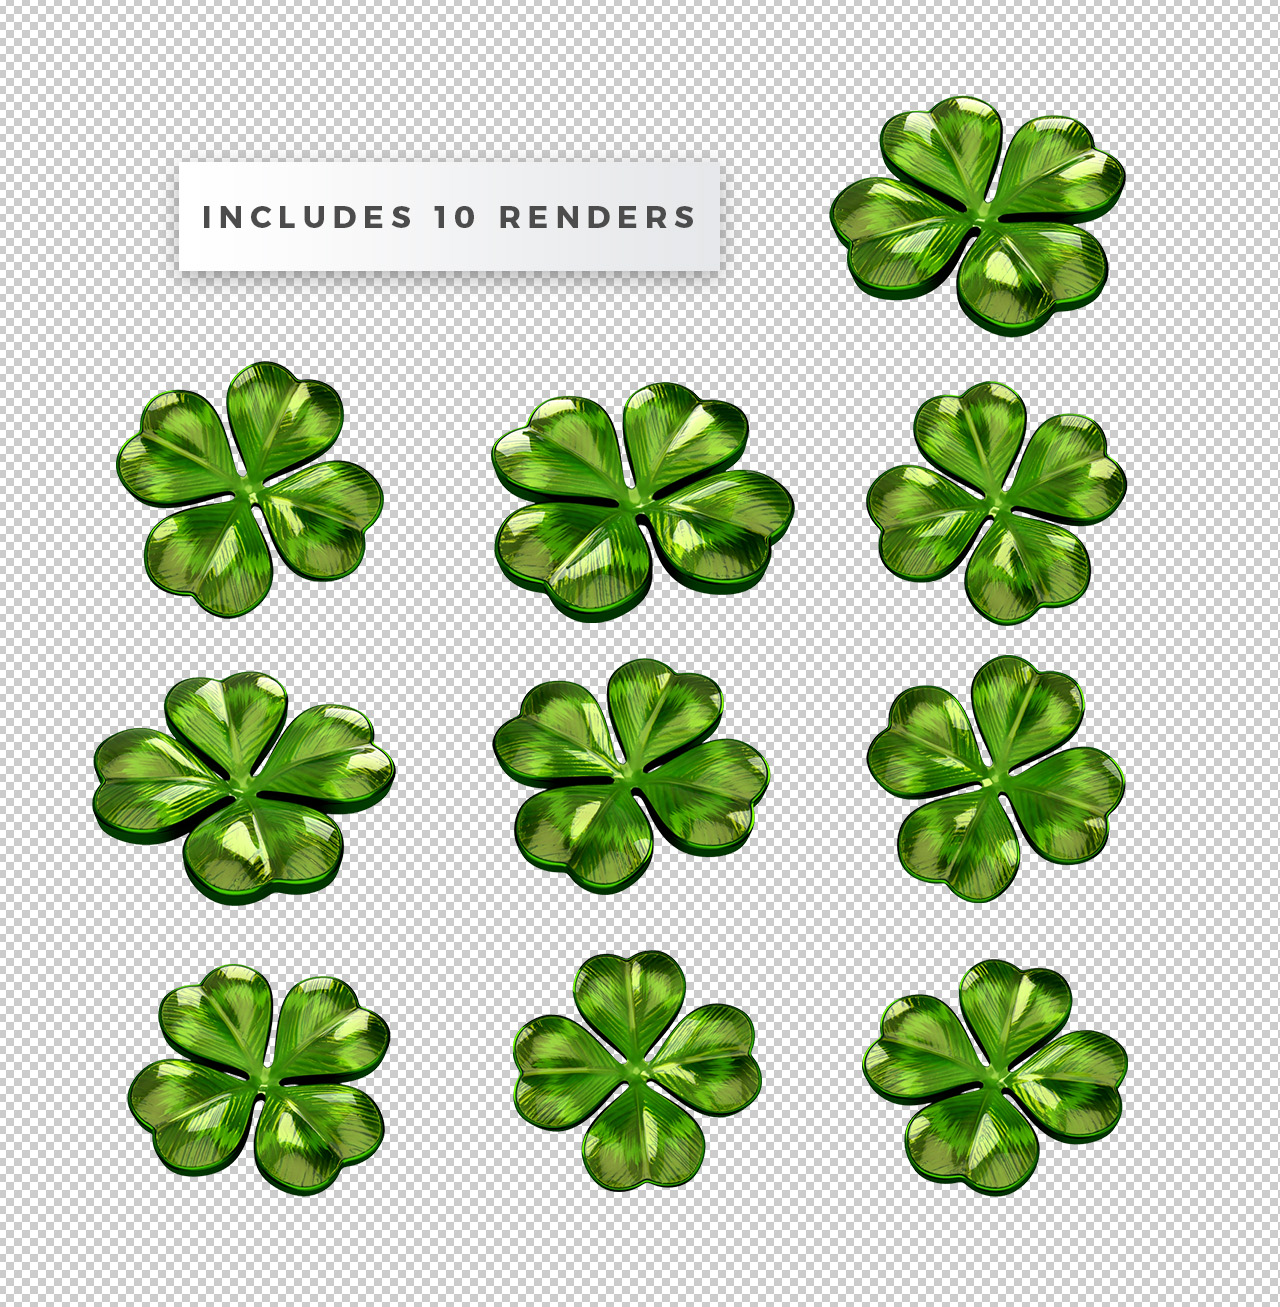 Free 3D Clover PNGs